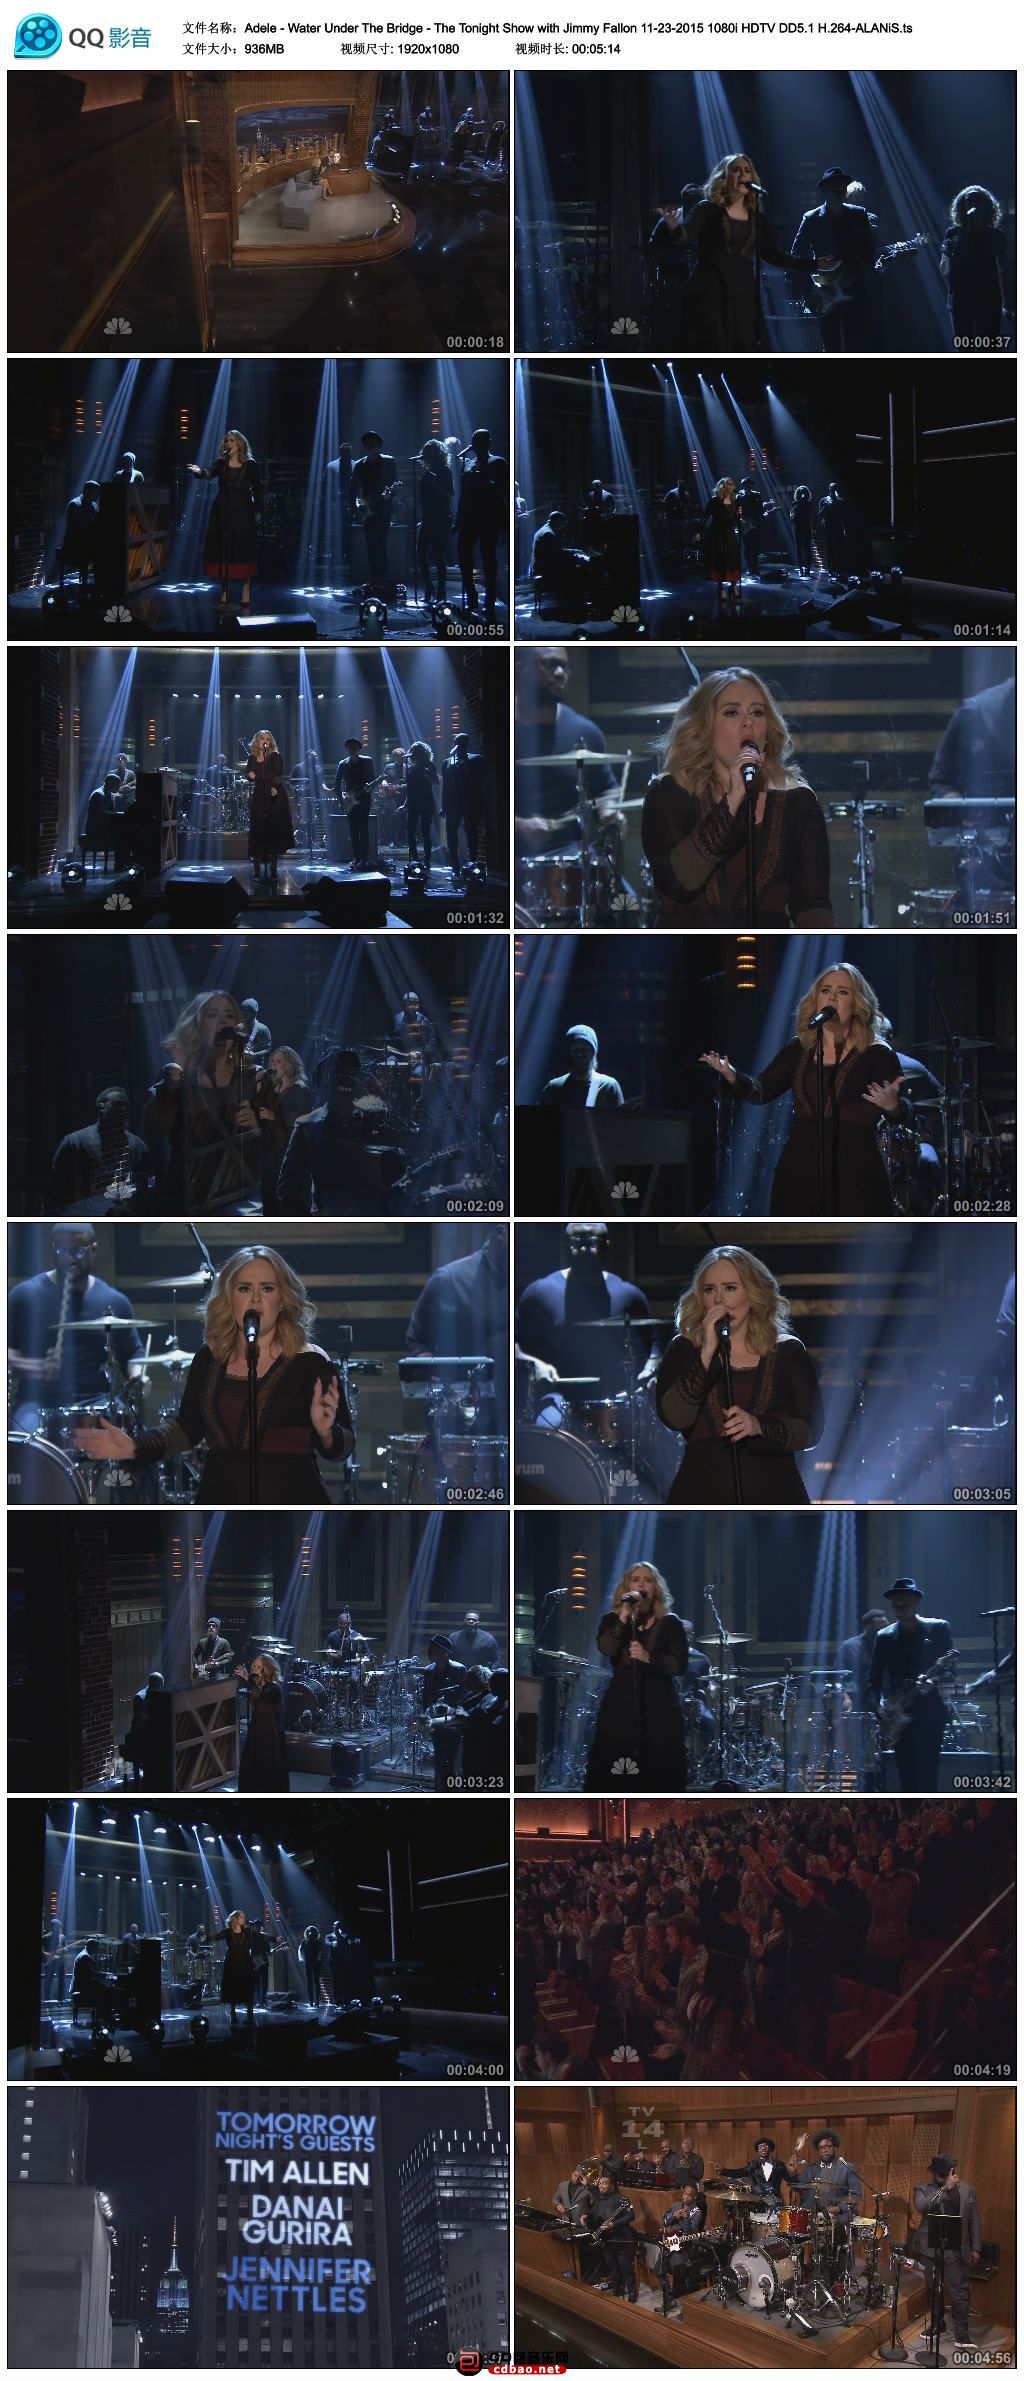 Adele - Water Under The Bridge - The Tonight Show with Jimmy Fallon 11-23-2015 1.jpg